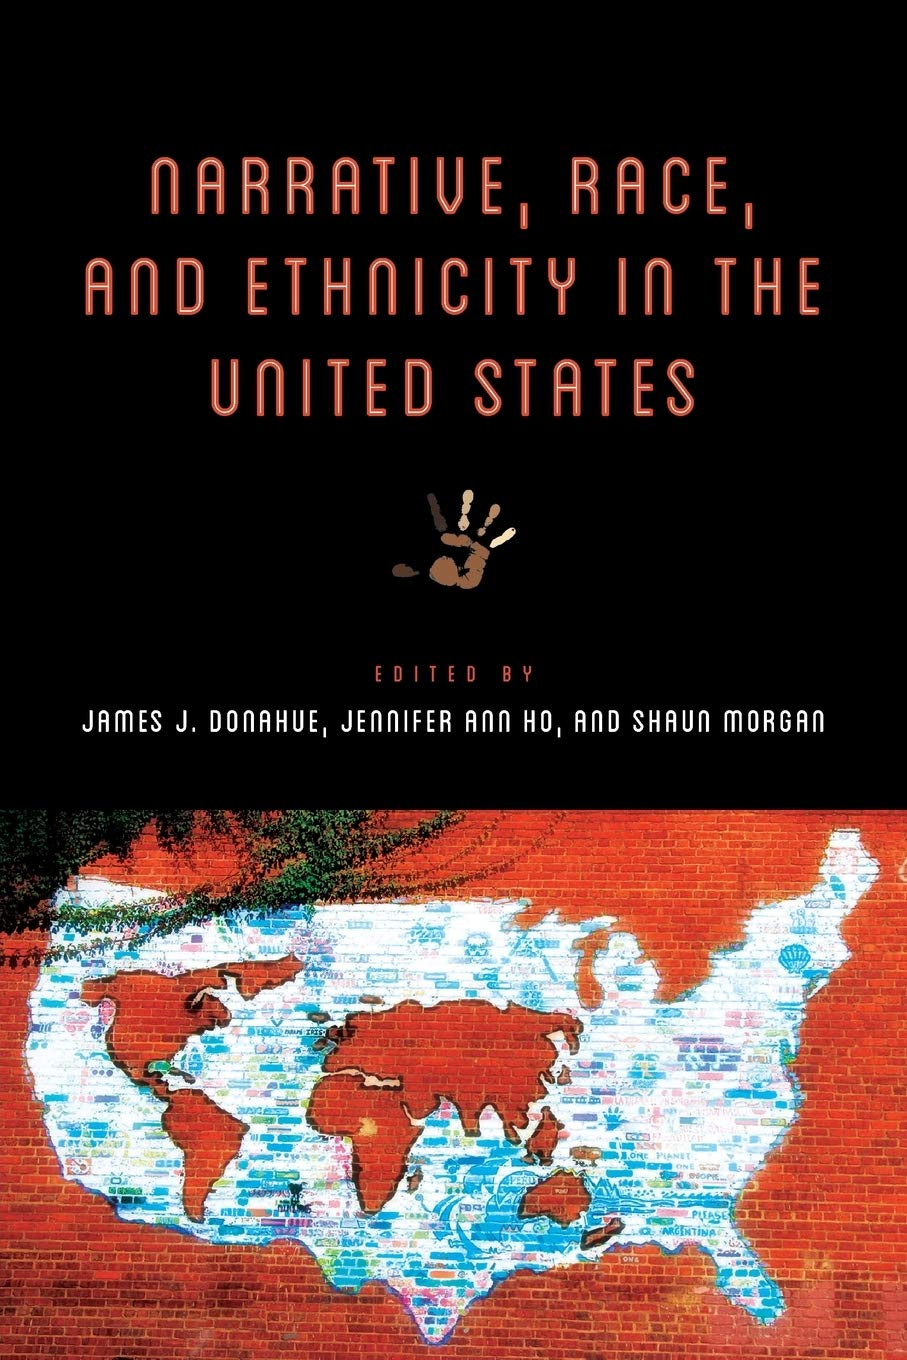 Narrative, Race, and Ethnicity in the United States by Jennifer Ho